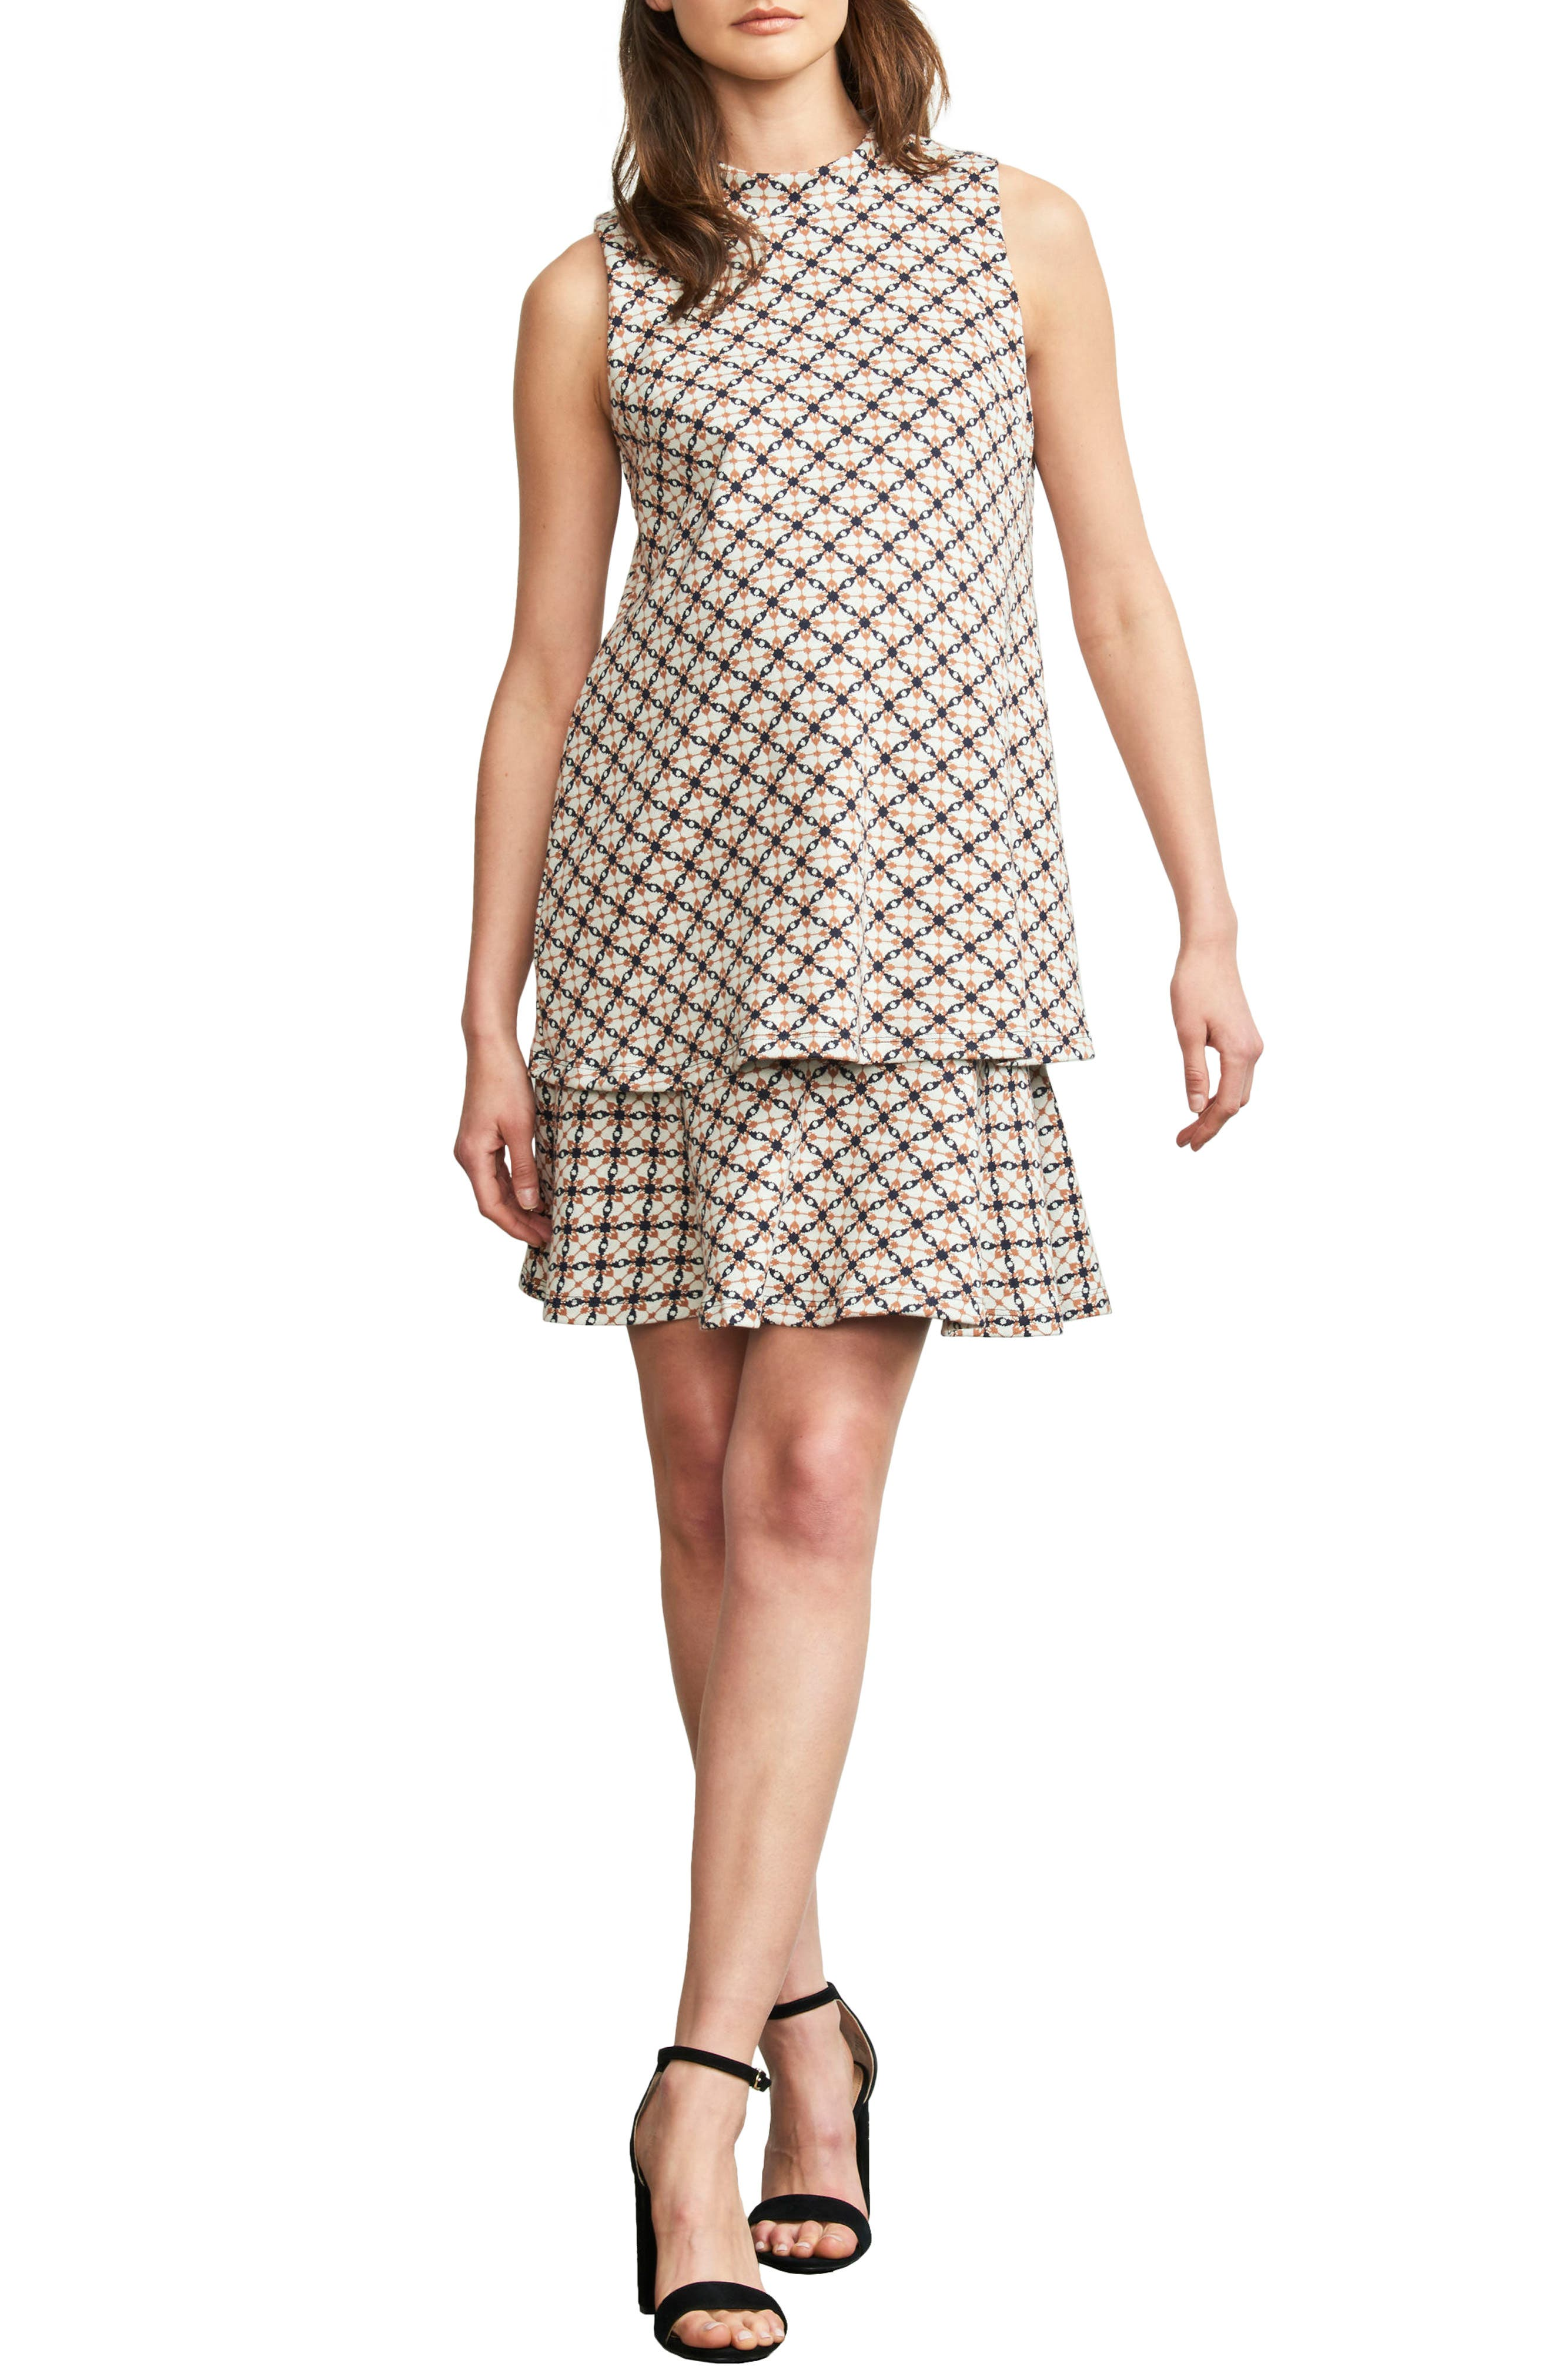 MATERNAL AMERICA, 'Lucy' Maternity Dress, Main thumbnail 1, color, JACQUARD